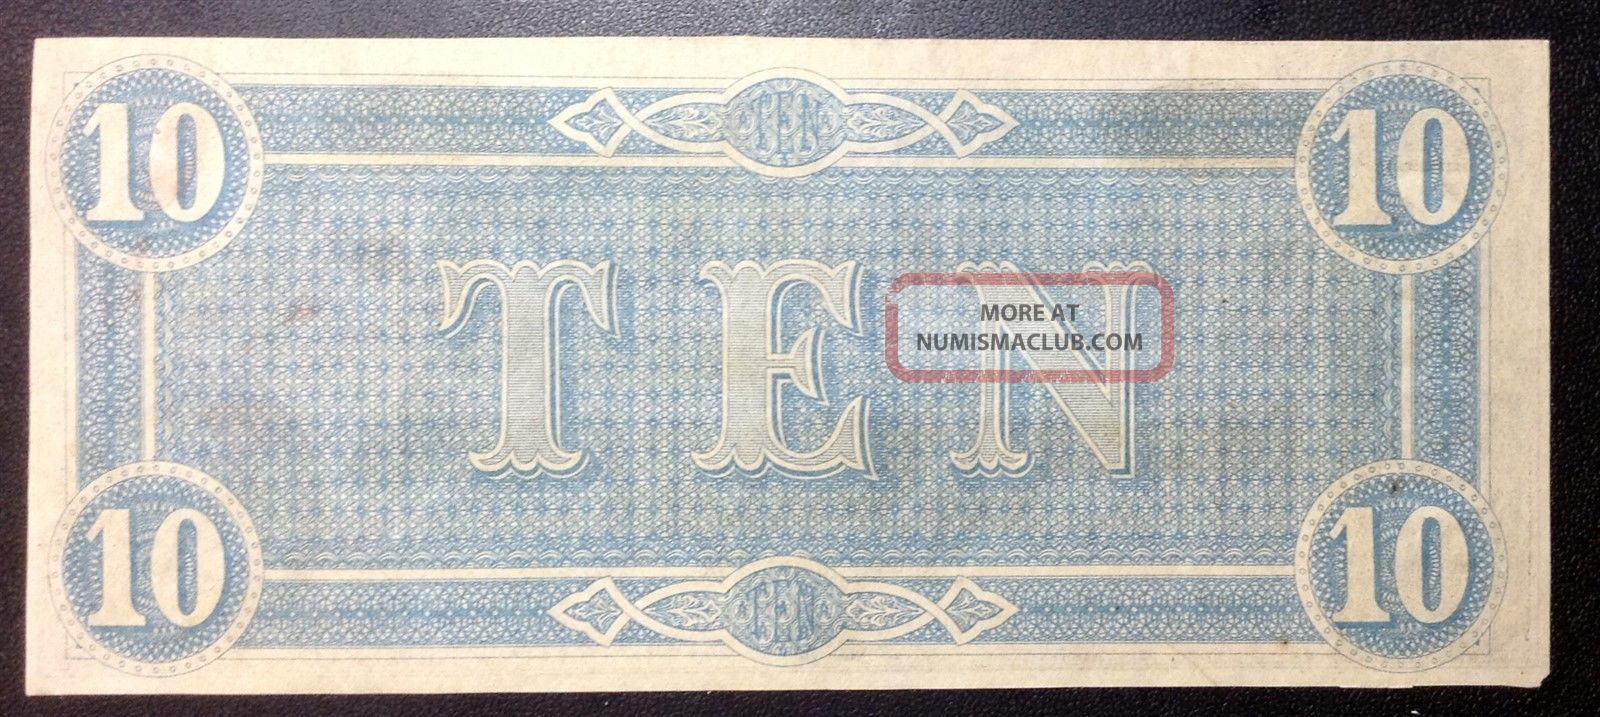 confederate paper money During the civil war the confederates states of america printed their own paper money confederate paper money was printed between 1861 and 1864.